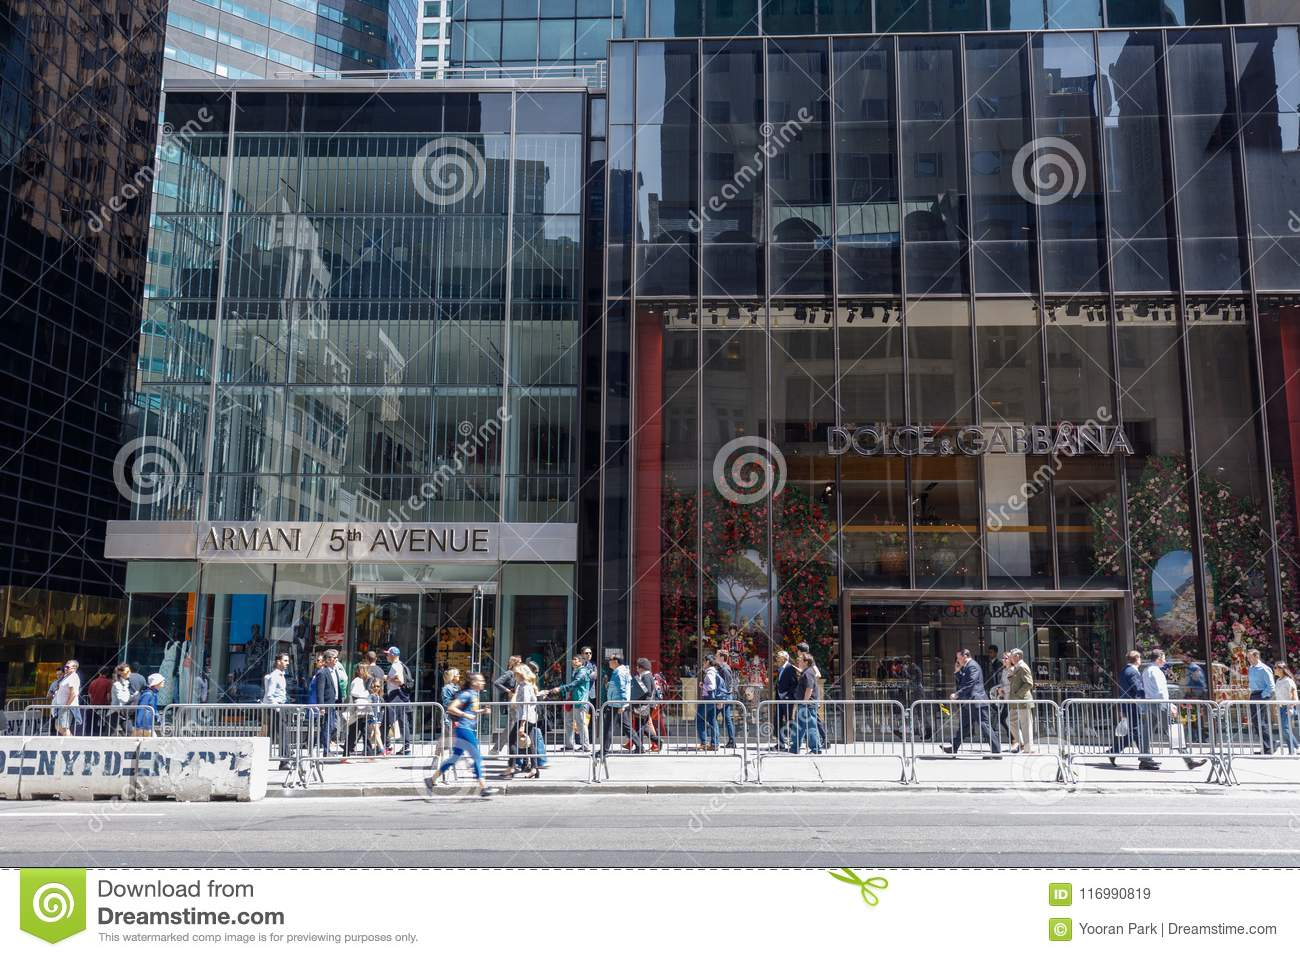 012bb402a0 New York, USA - May 12, 2018 : Dolce & Gabbana, Armani shop in fifth avenue,  5th Avenue is a central road of Manhattan, the most expensive shops and ...